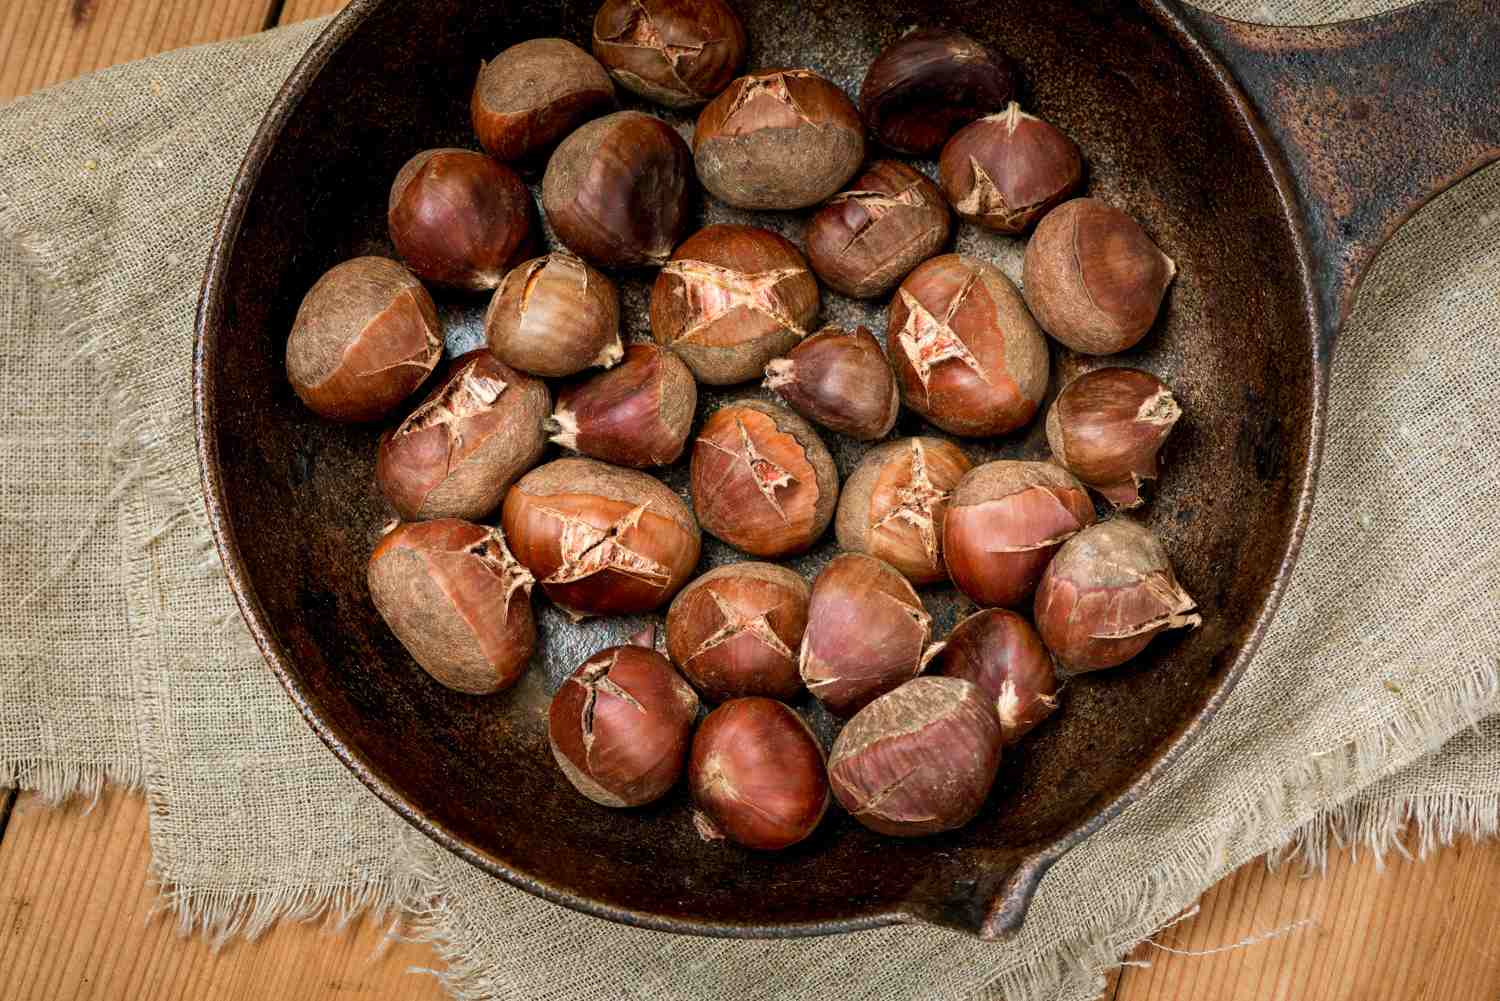 how-to-roast-chestnuts-in-oven-4113870_Hero-5b55dd11c9e77c005bcfbd72